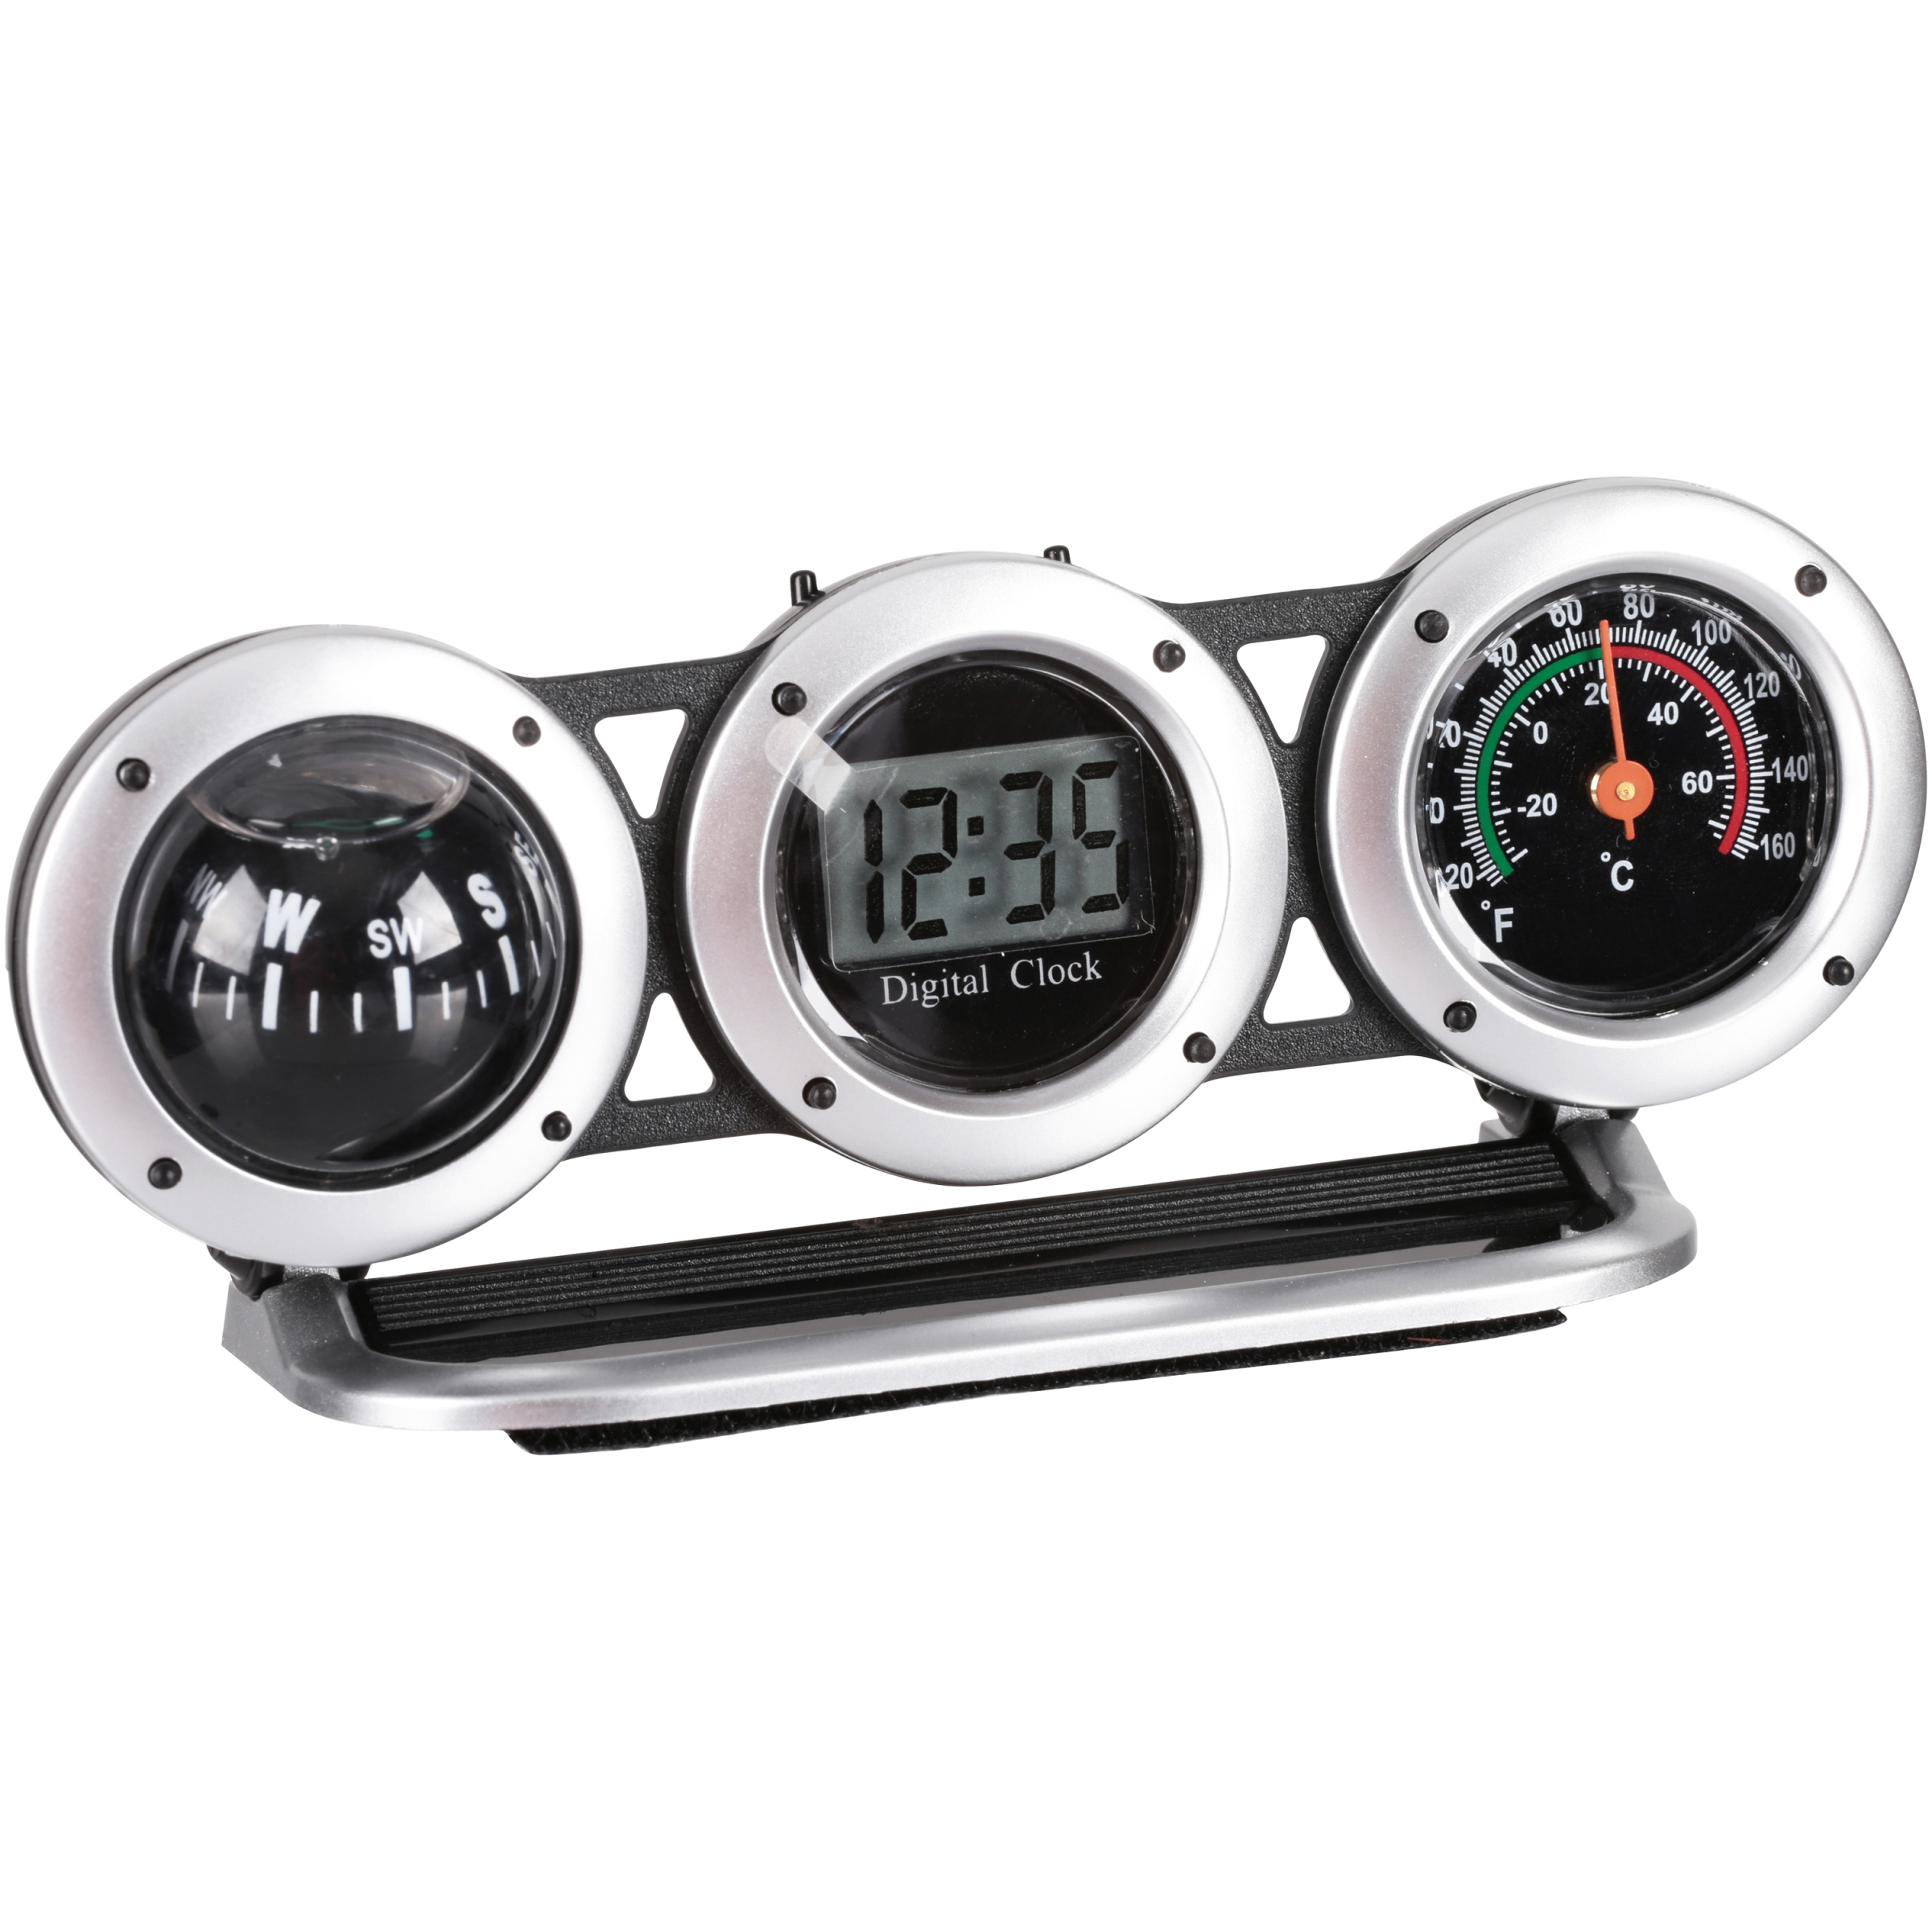 Bell® Clock Compass Thermometer